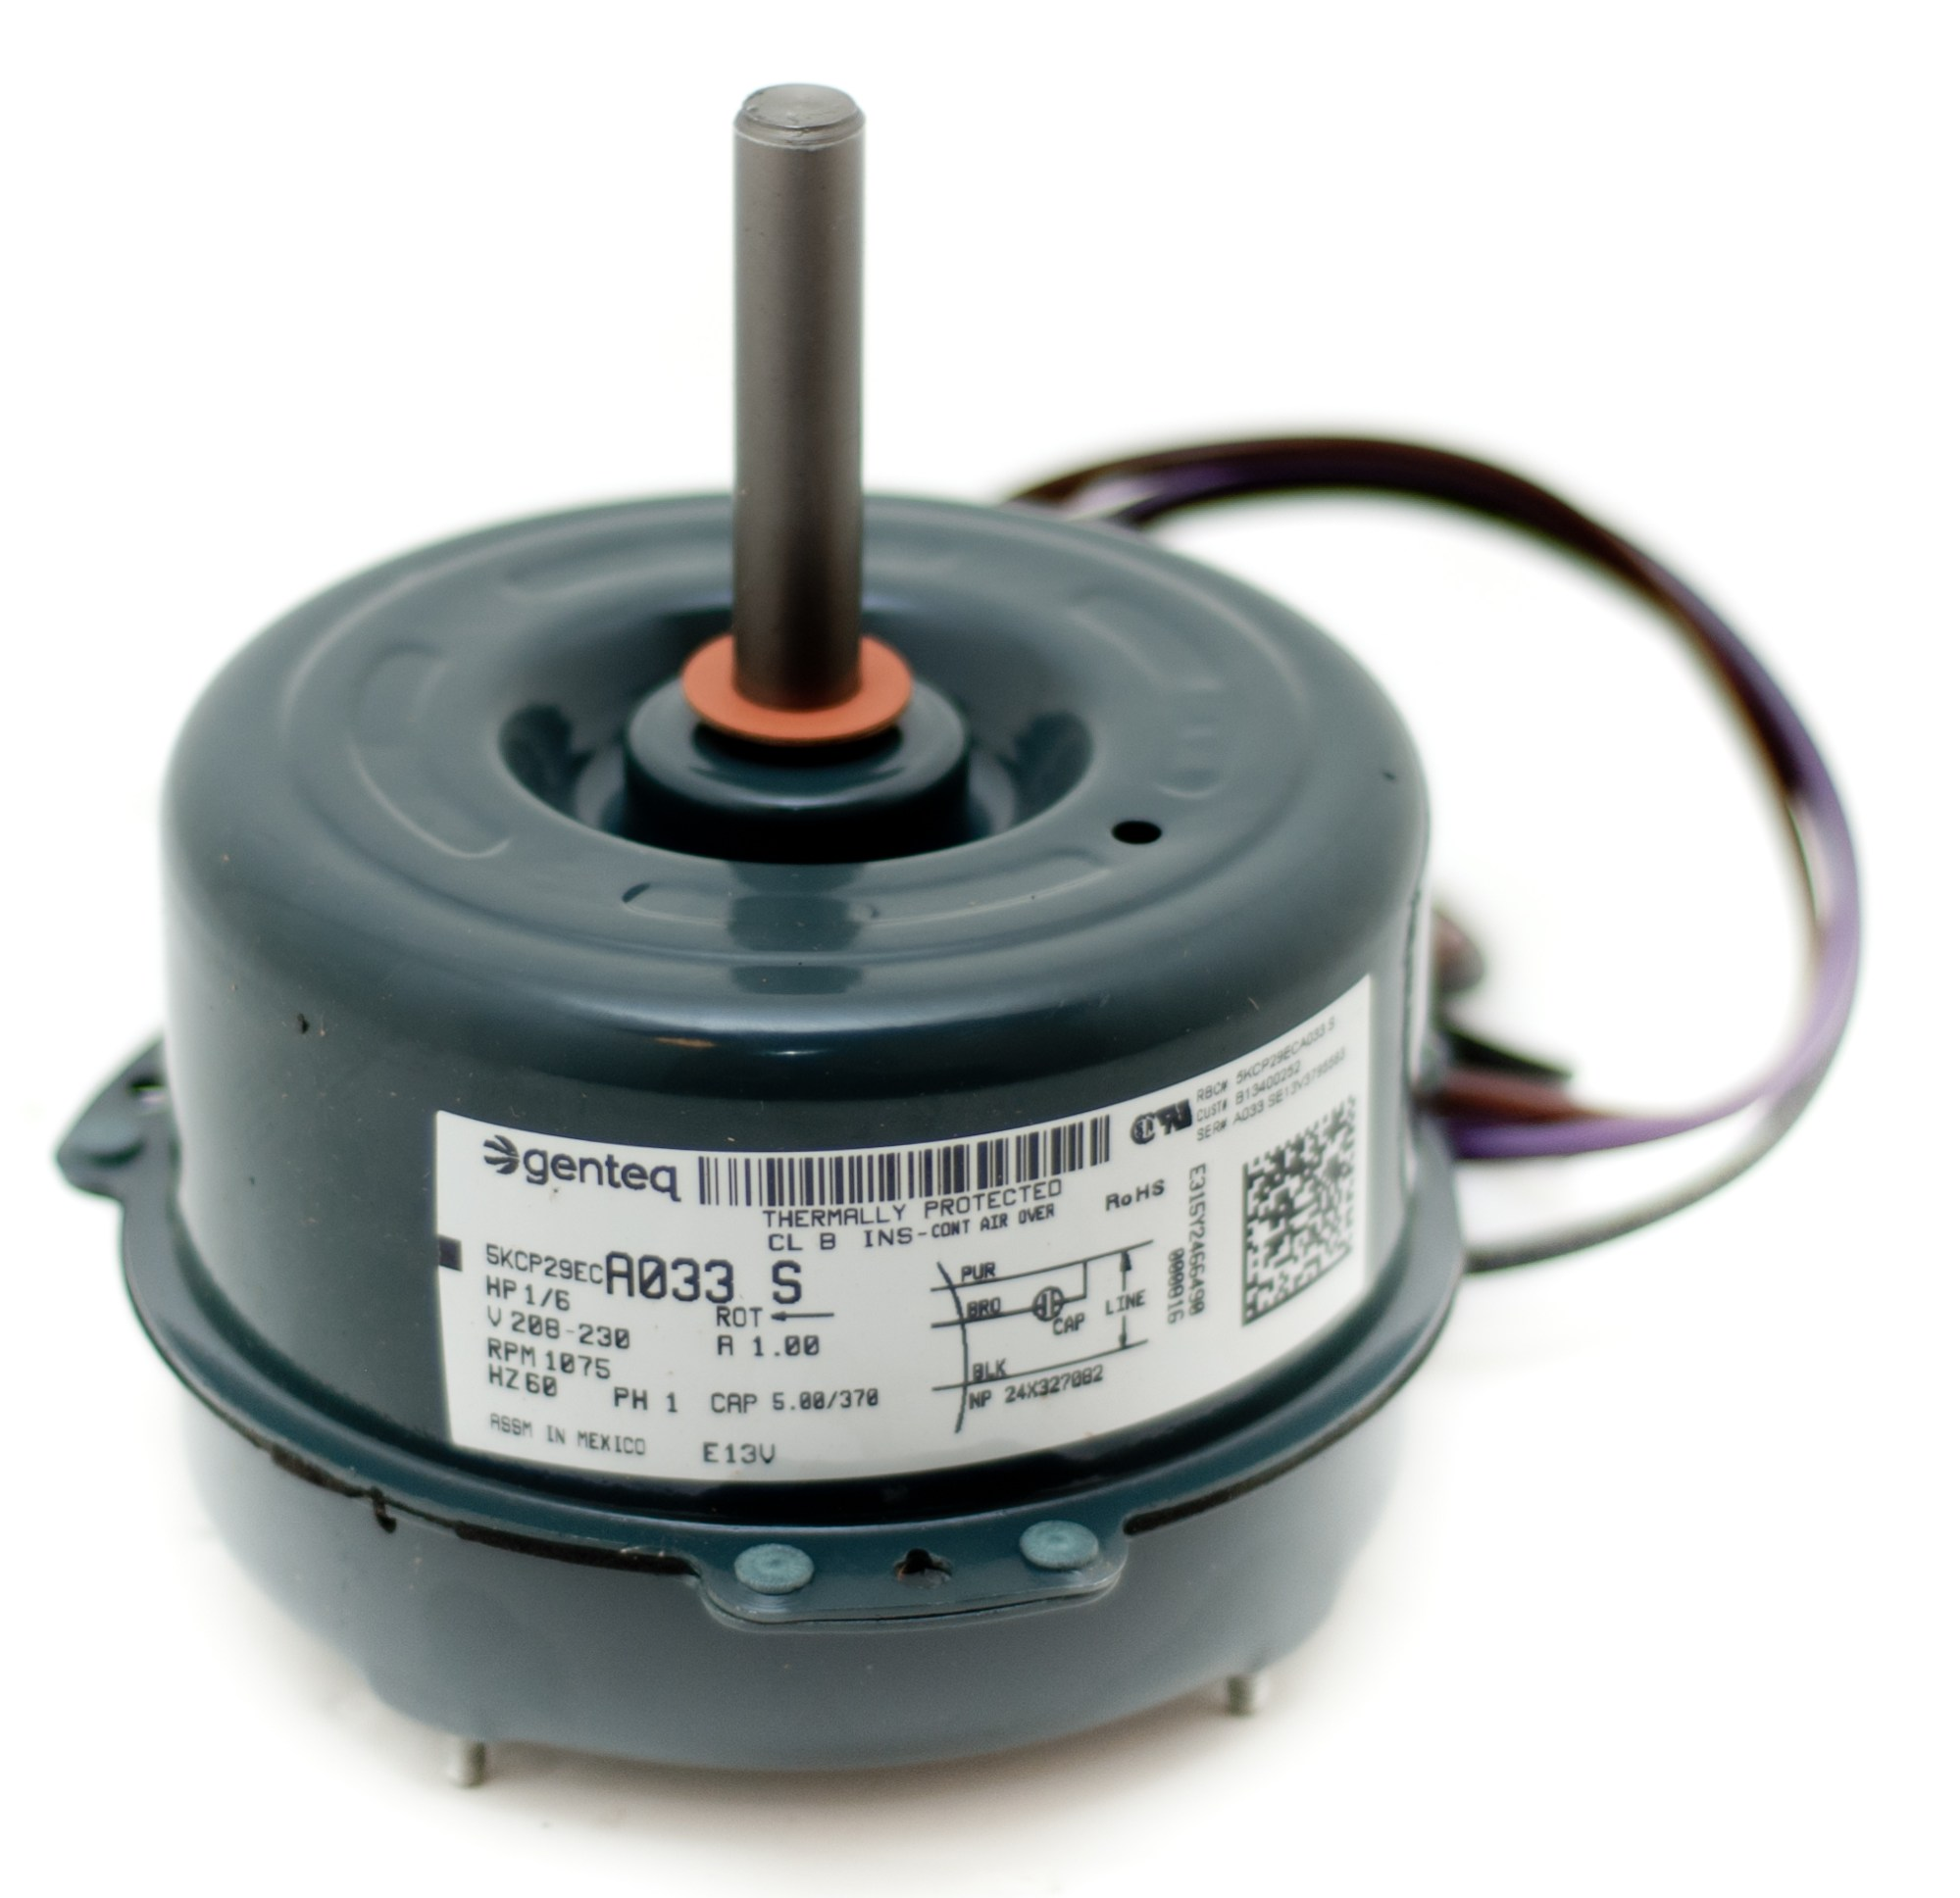 hight resolution of condenser fan motor u2013 b13400252s janitrol goodman 1 6 hp 1 speed 8condenser fan motor u2013 b13400252s janitrol goodman 1 6 hp 1 speed